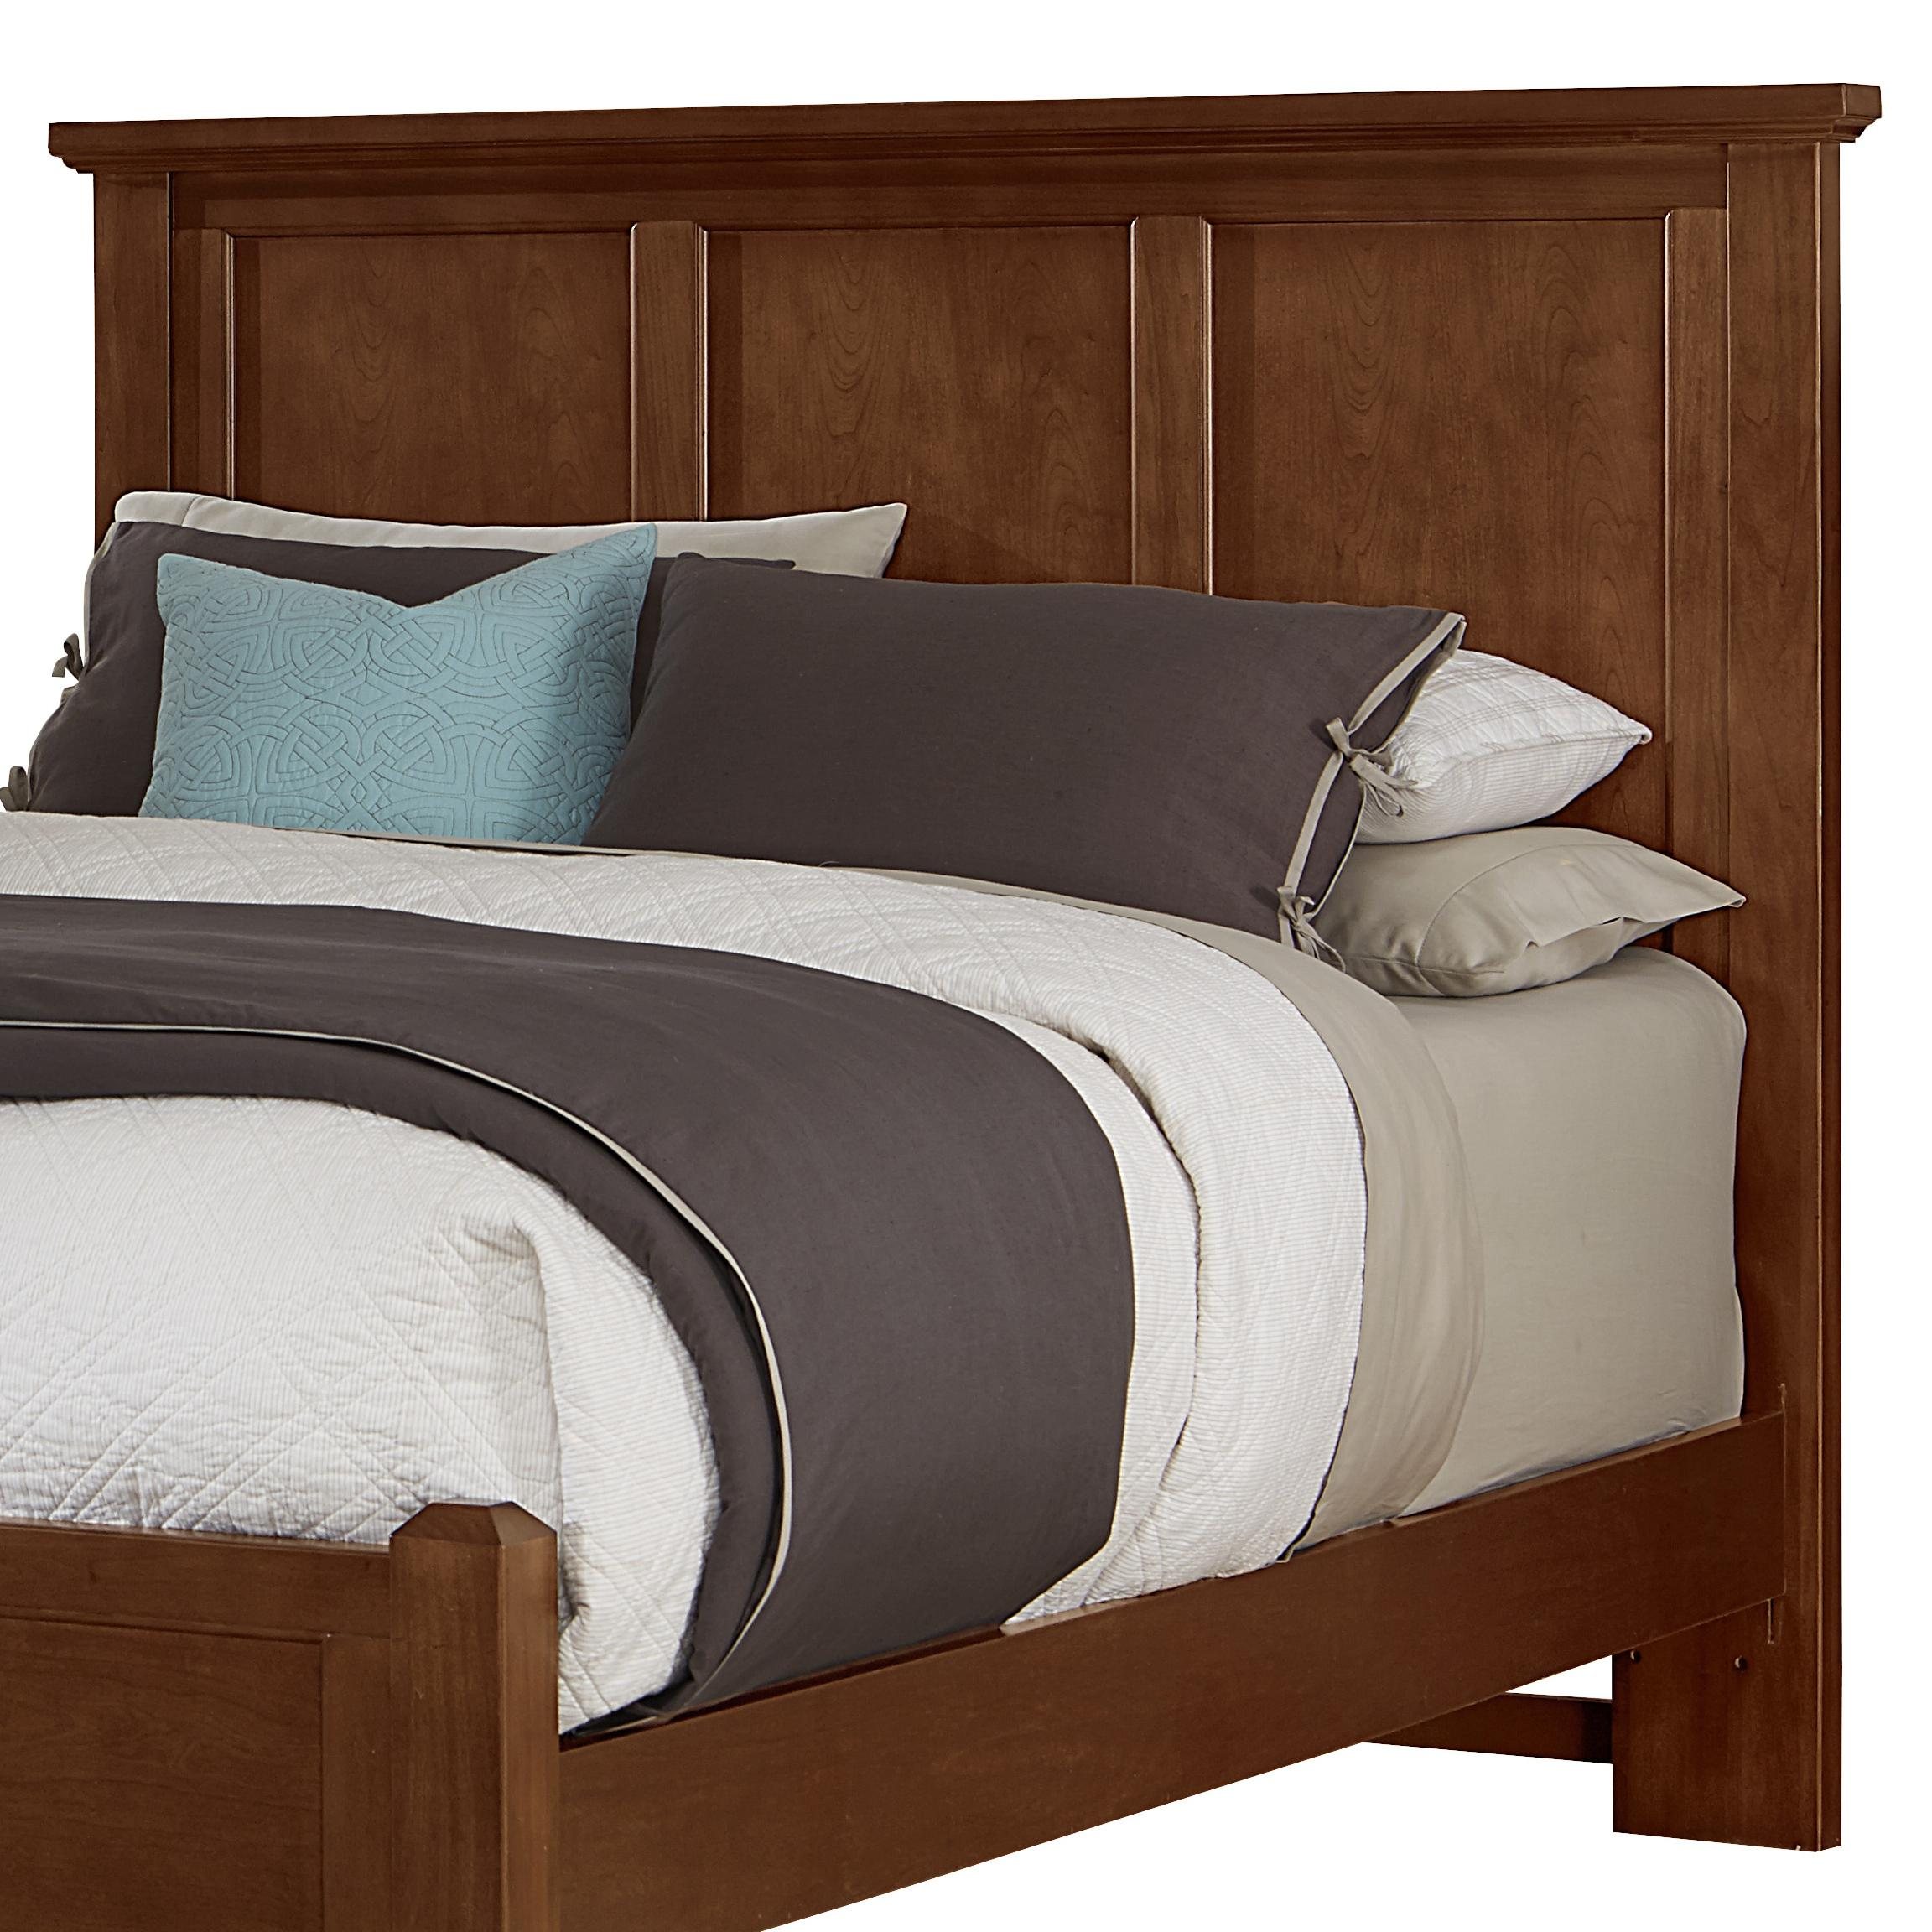 King/California King Mansion Headboard